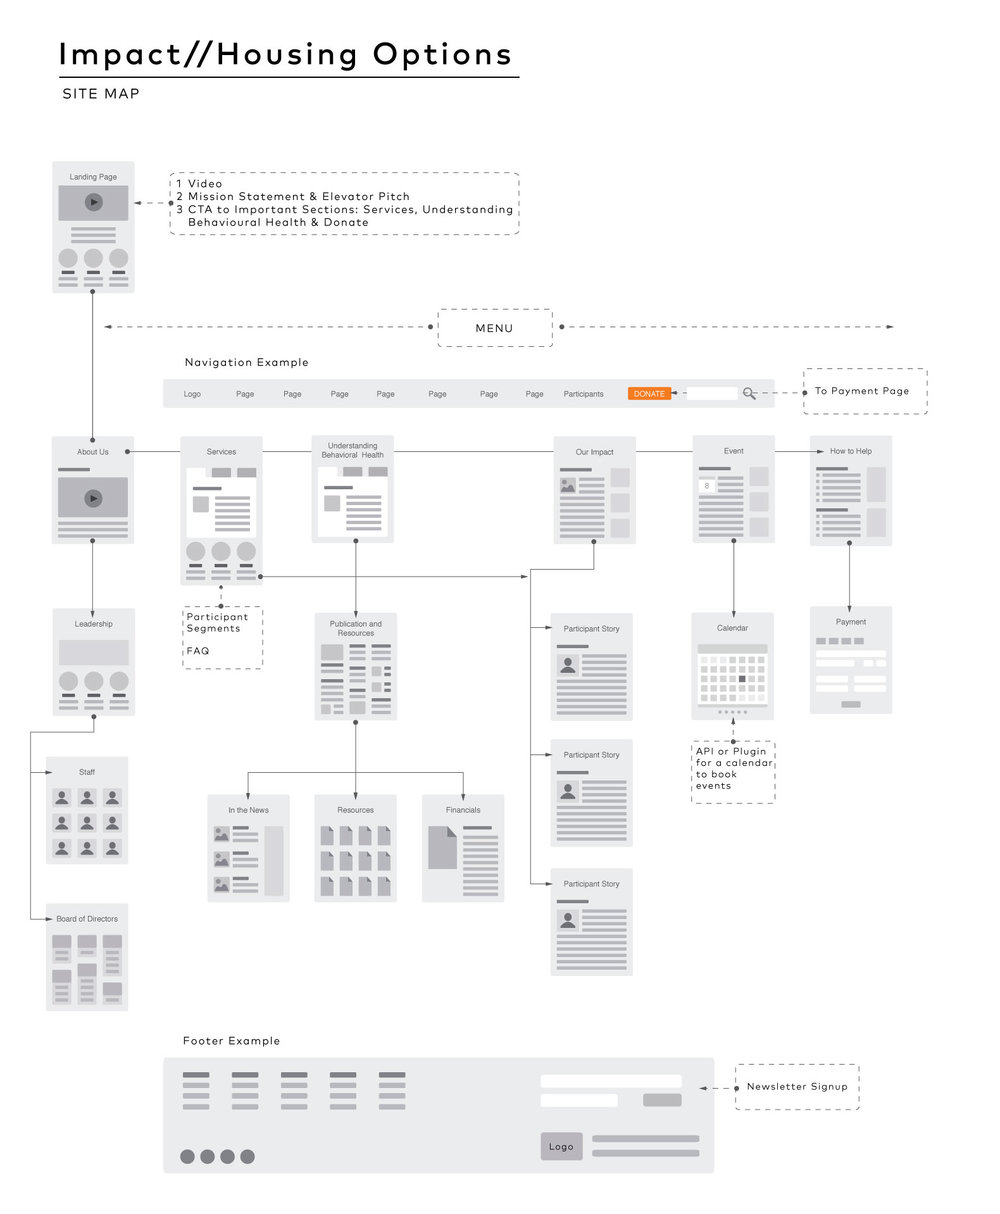 Housing-Options-Site-Map-&-Wireframe.jpg